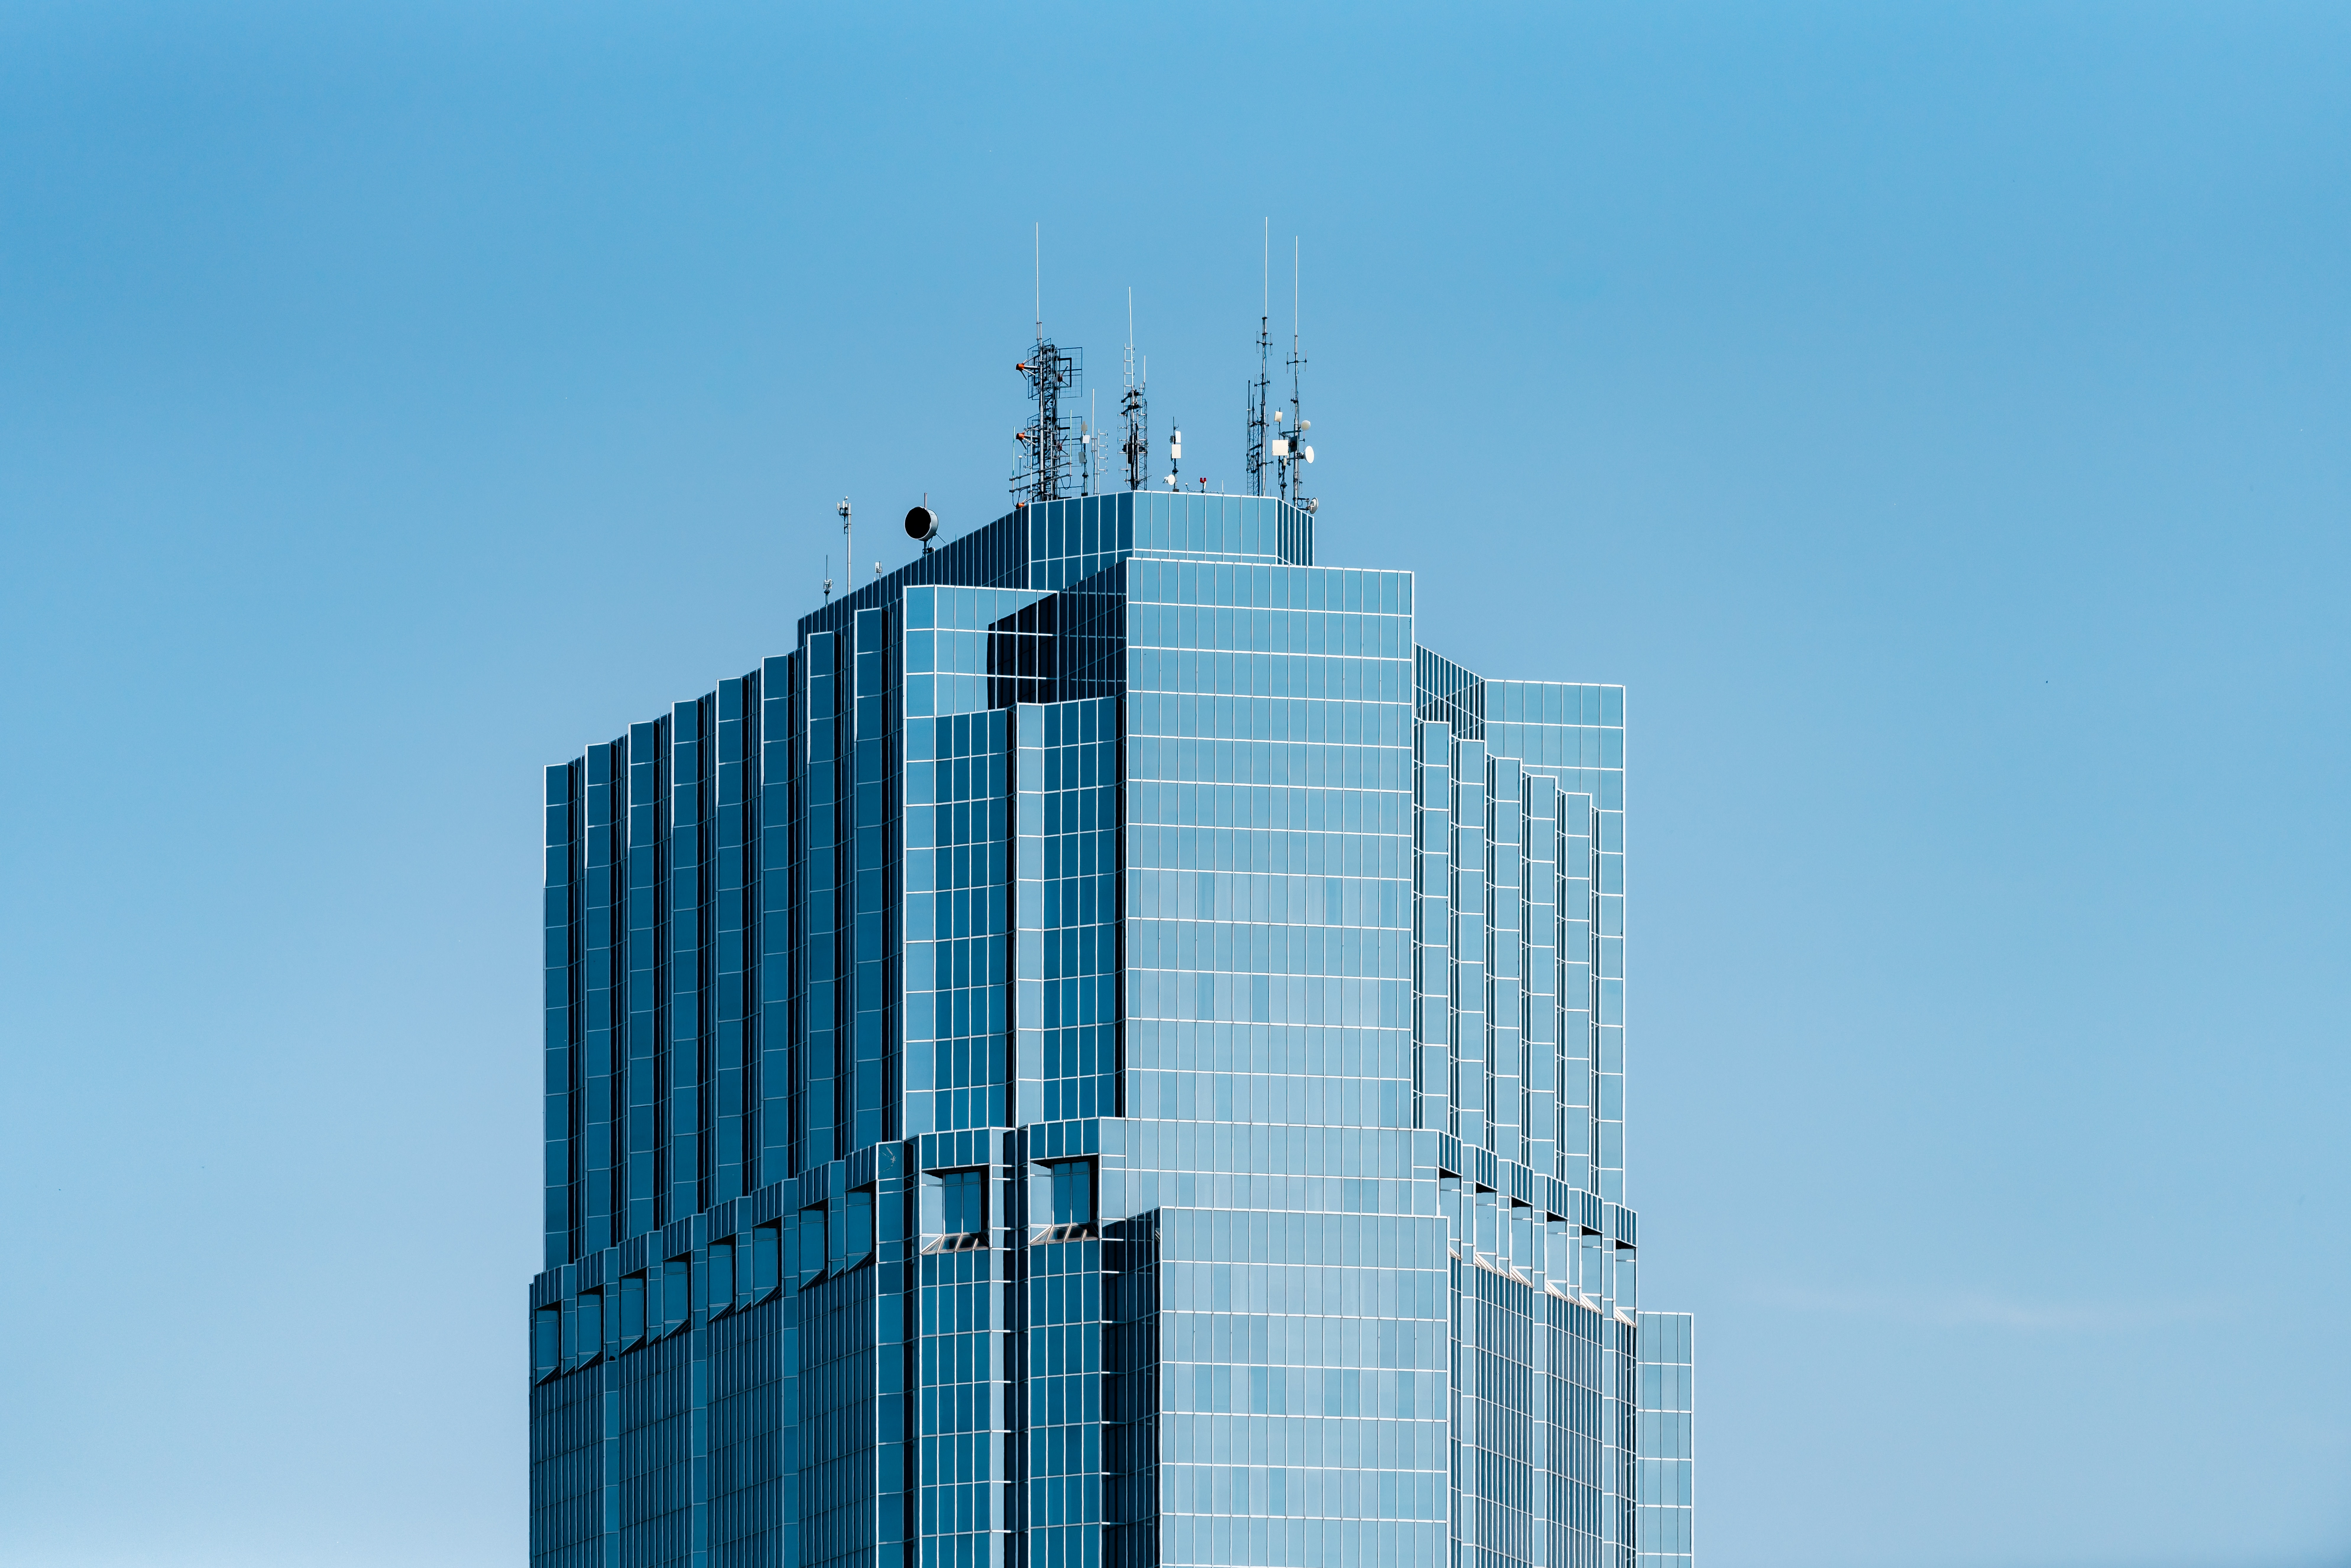 glass-mirrored high-rise building